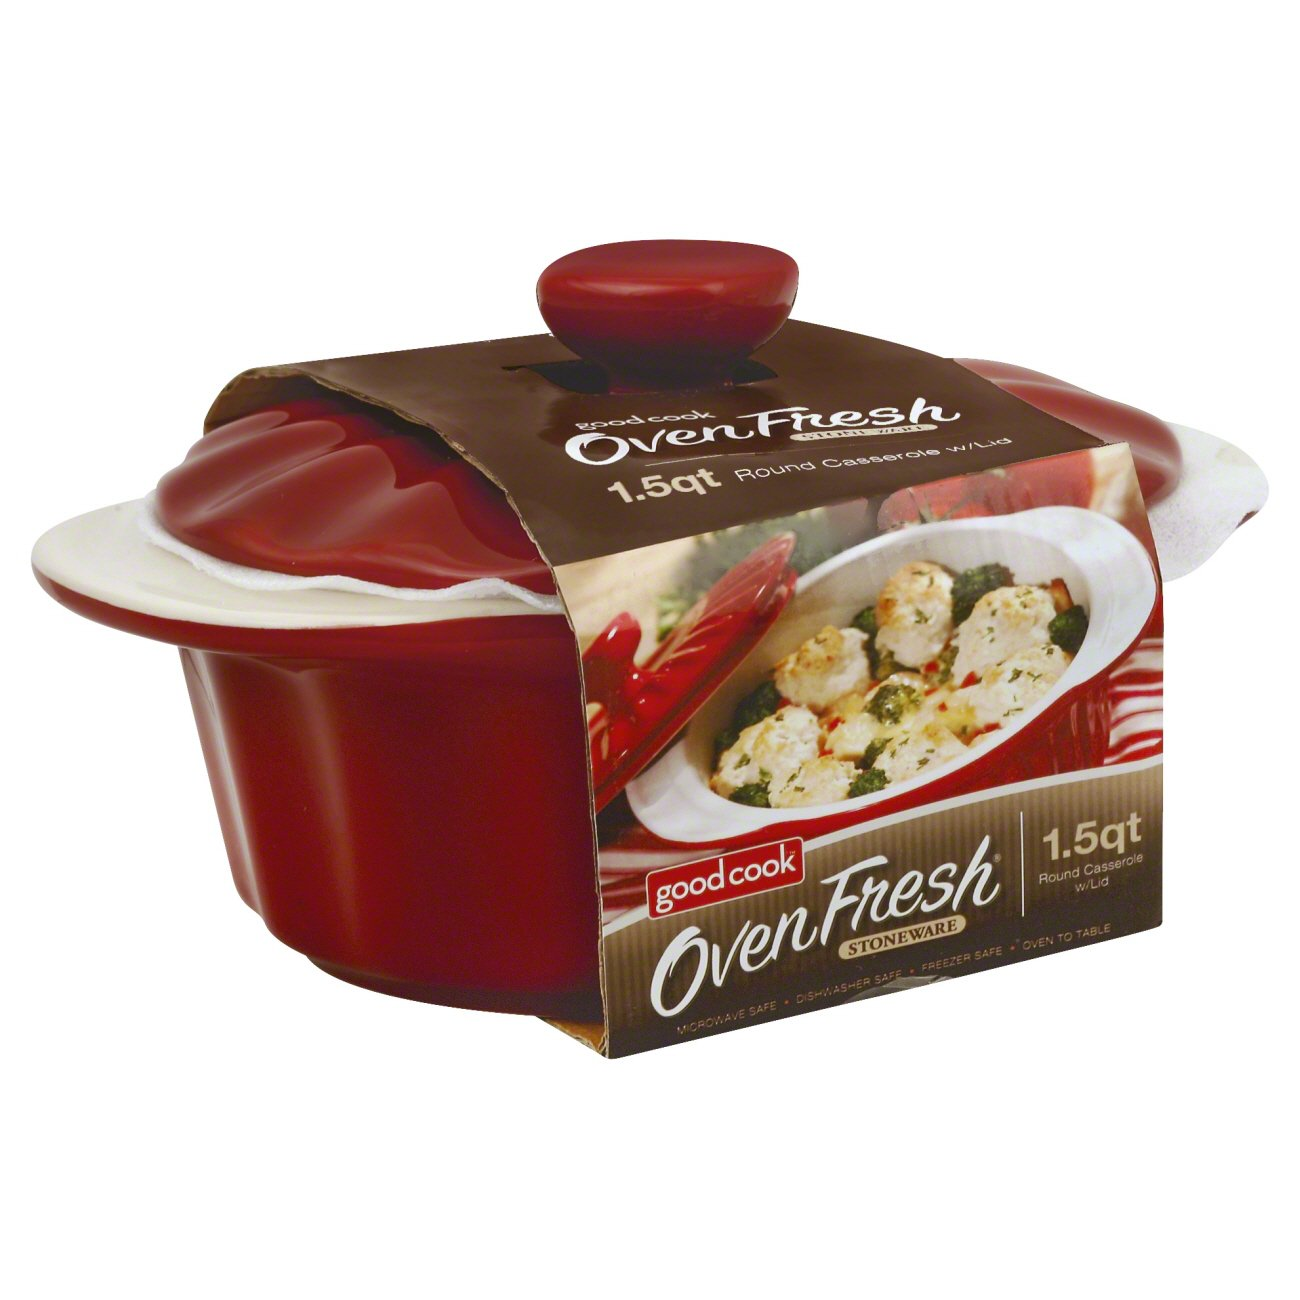 Good Cook Oven Fresh Ceramic Casserole With Lid - Shop Baking Dishes ...